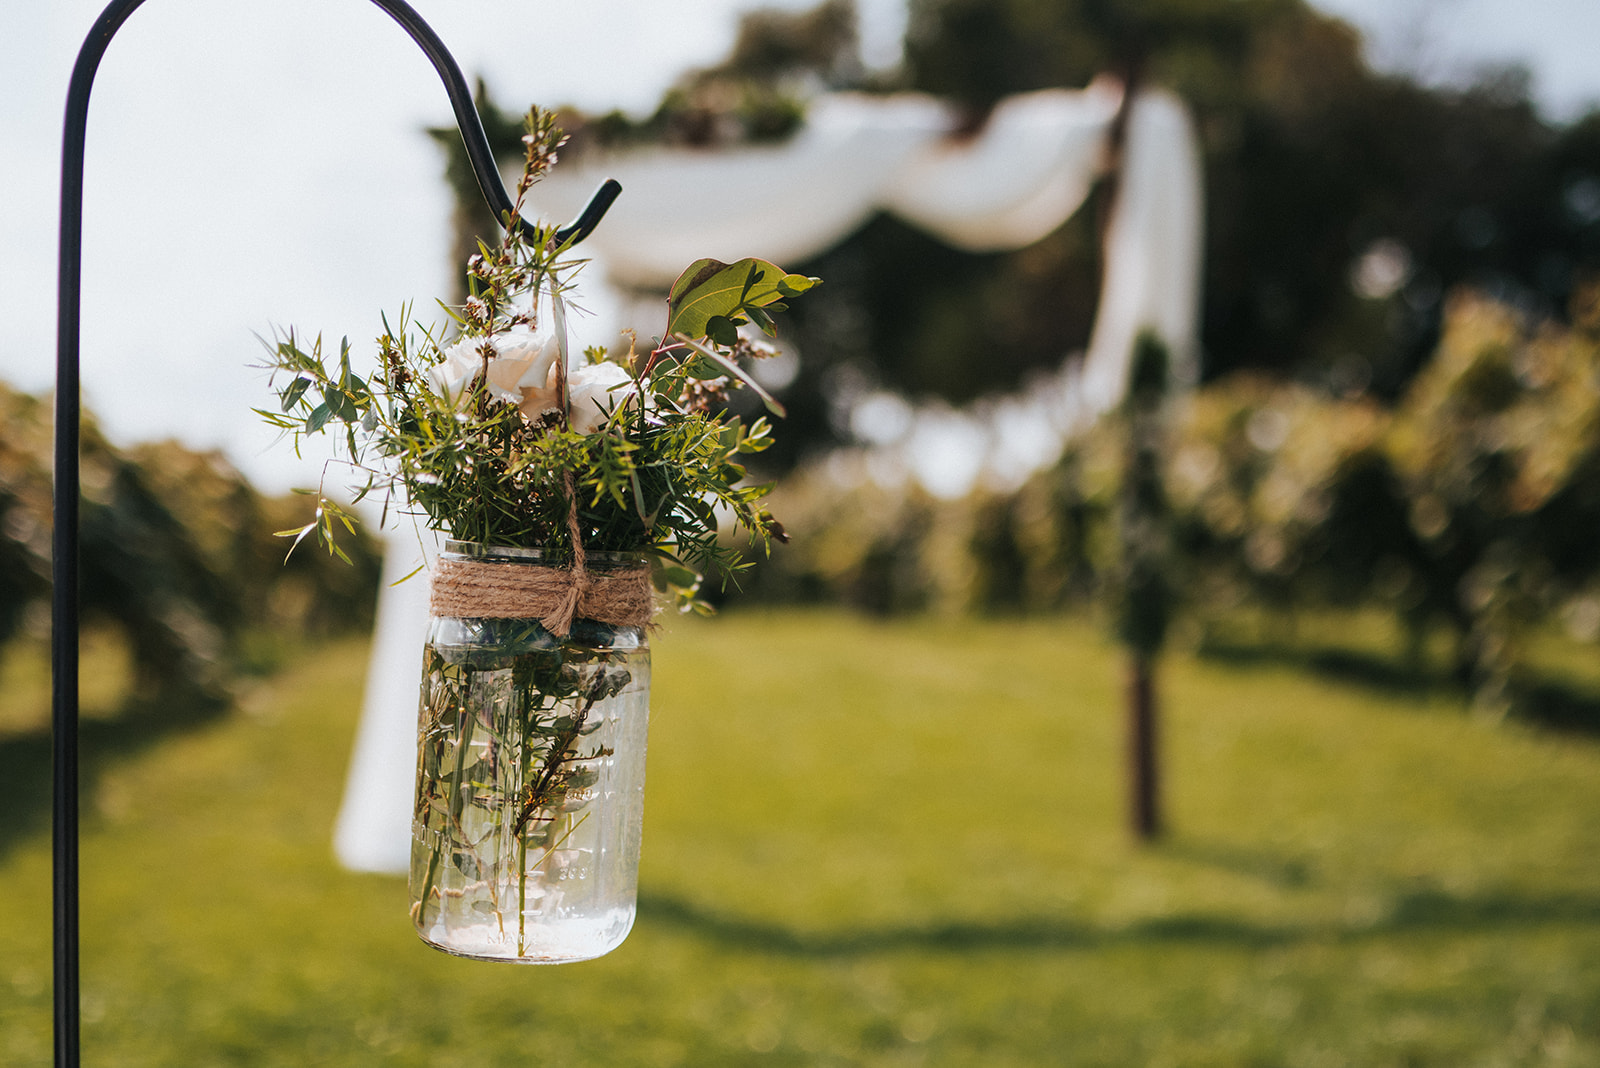 overthevineswisconsinwedding_0476.jpg